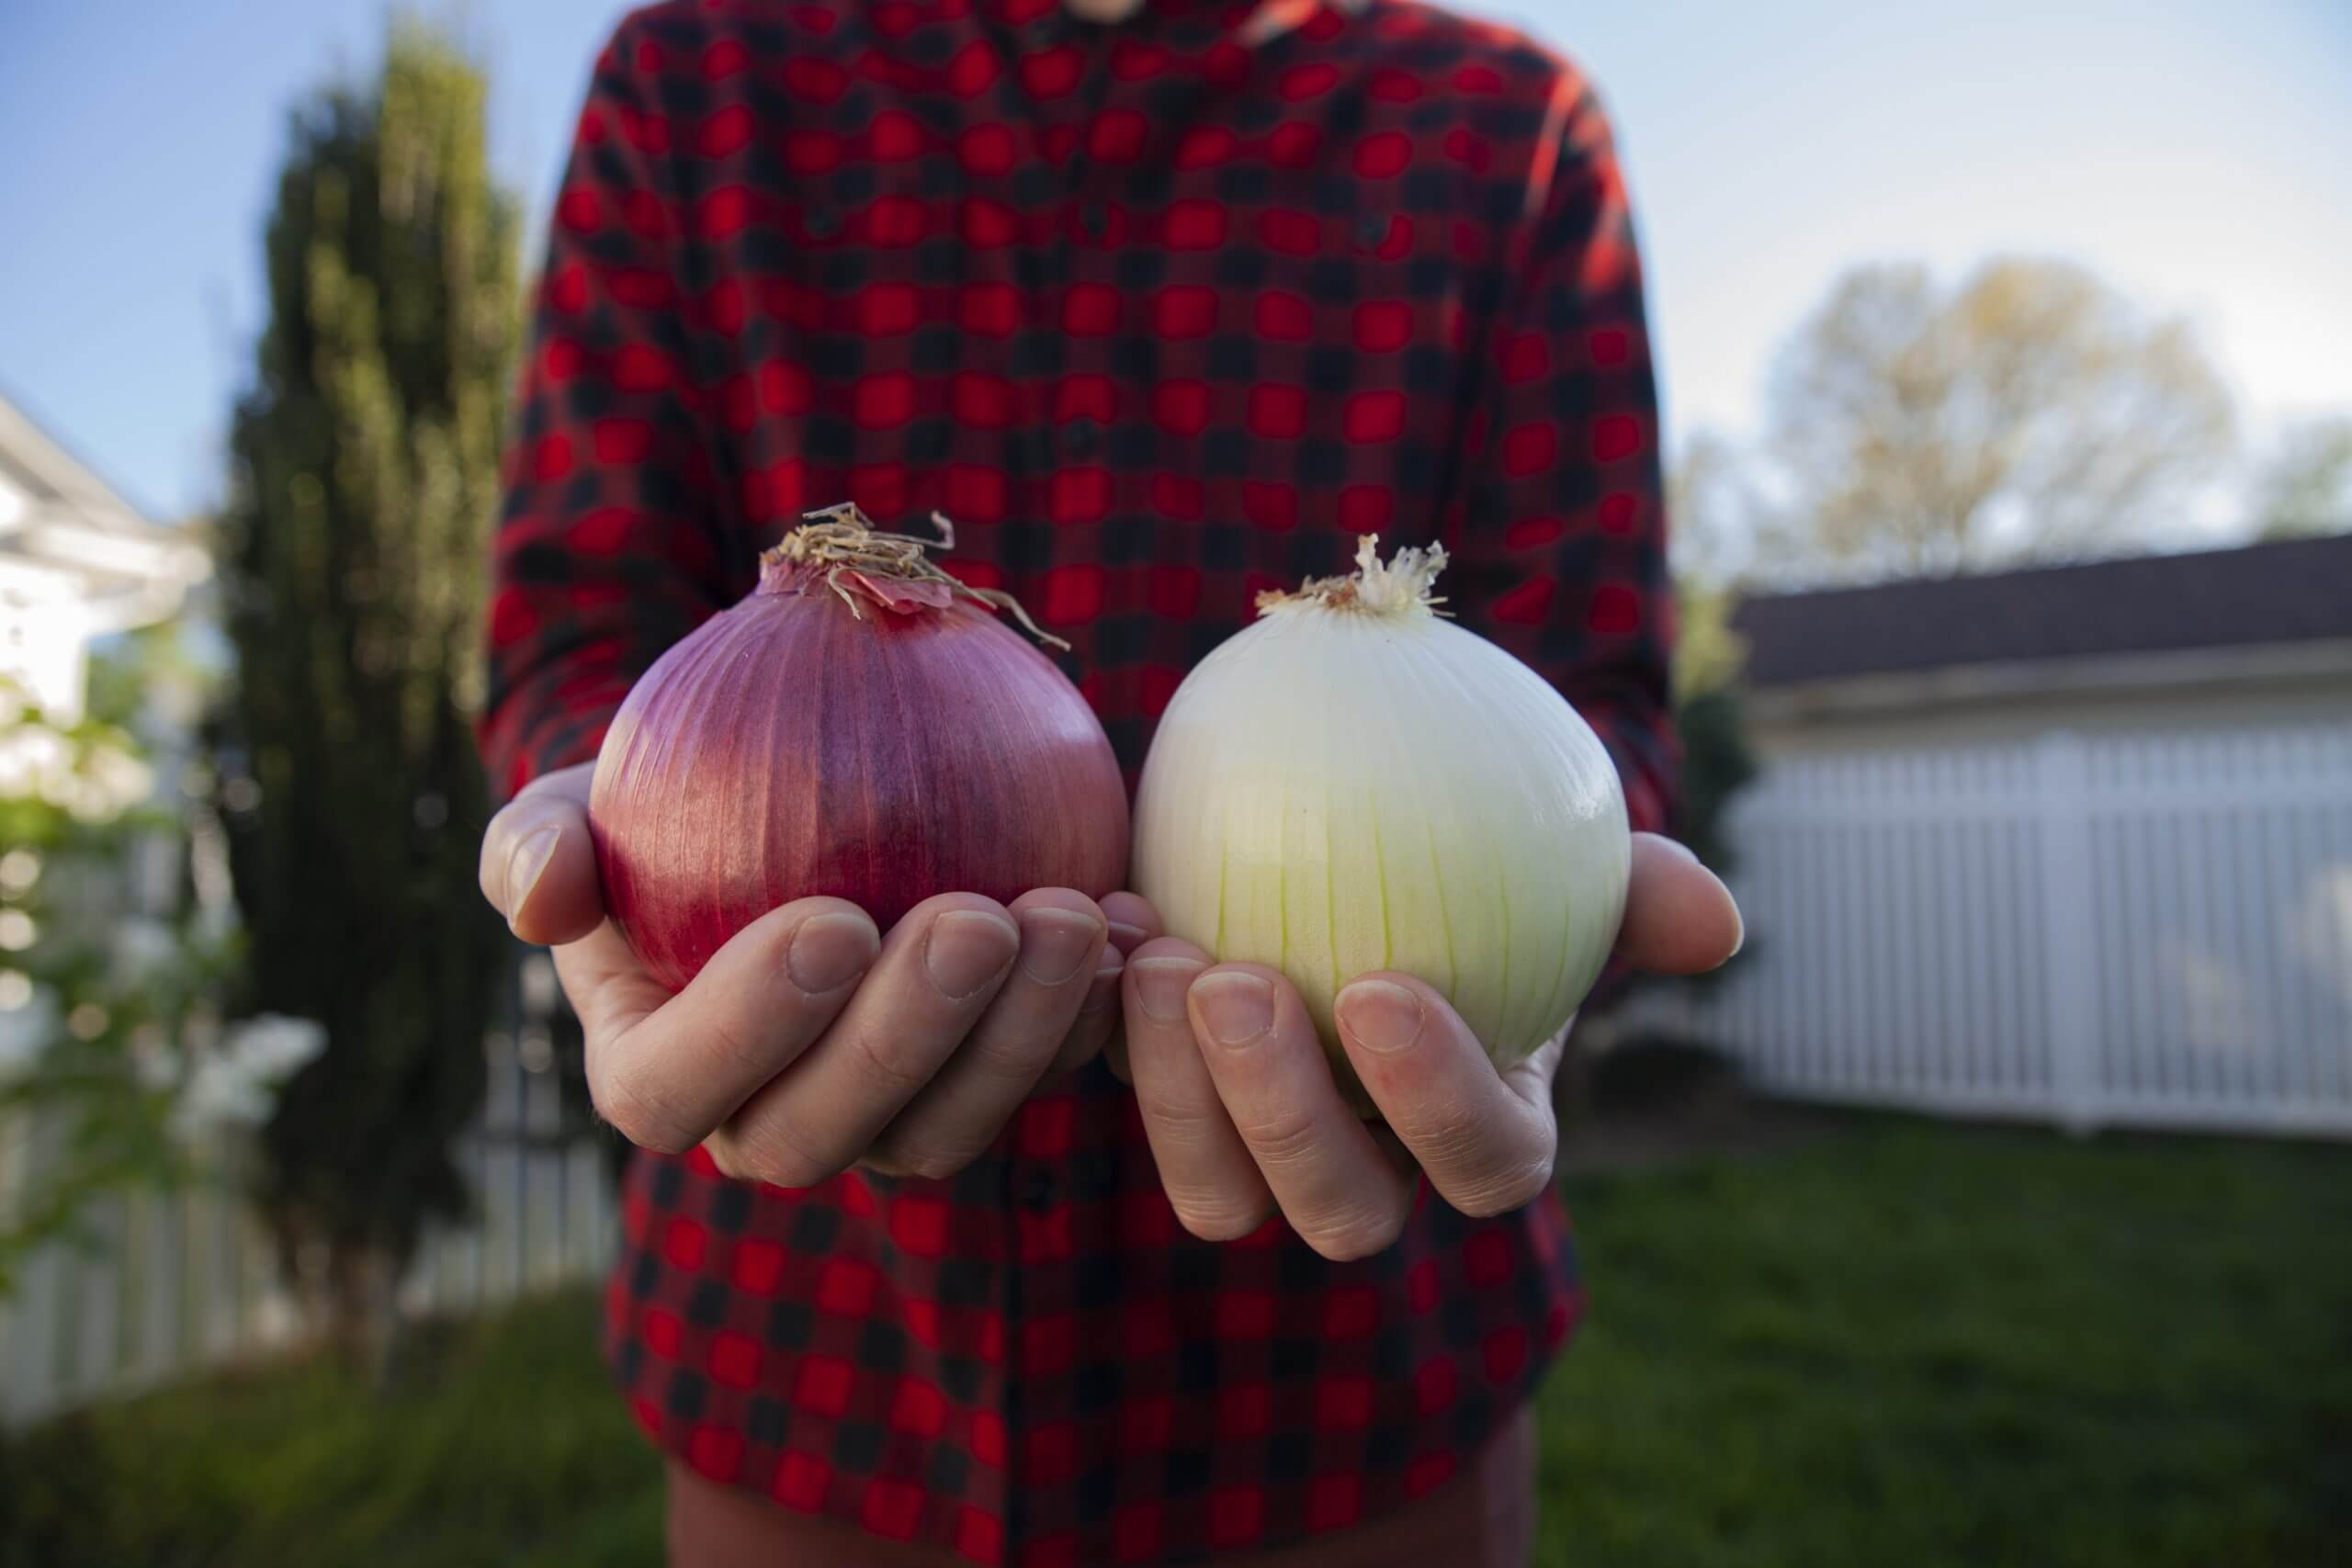 A person holding a red onion in one hand and a white onion in the other.